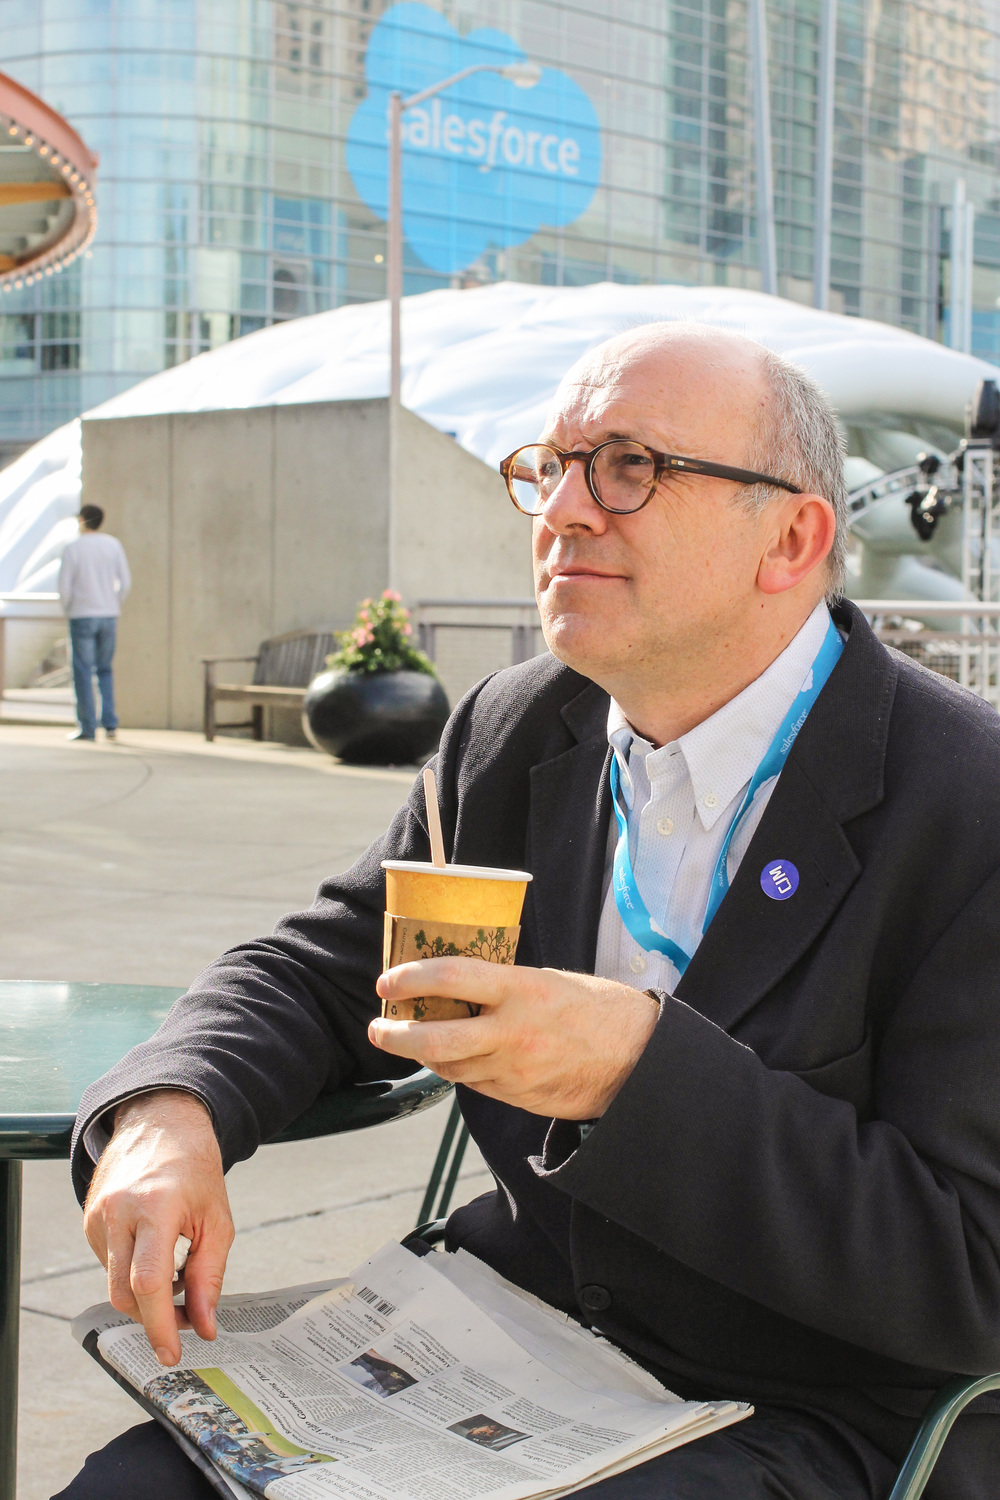 Taking a coffee break during the Dreamforce Convention. #conferencetime